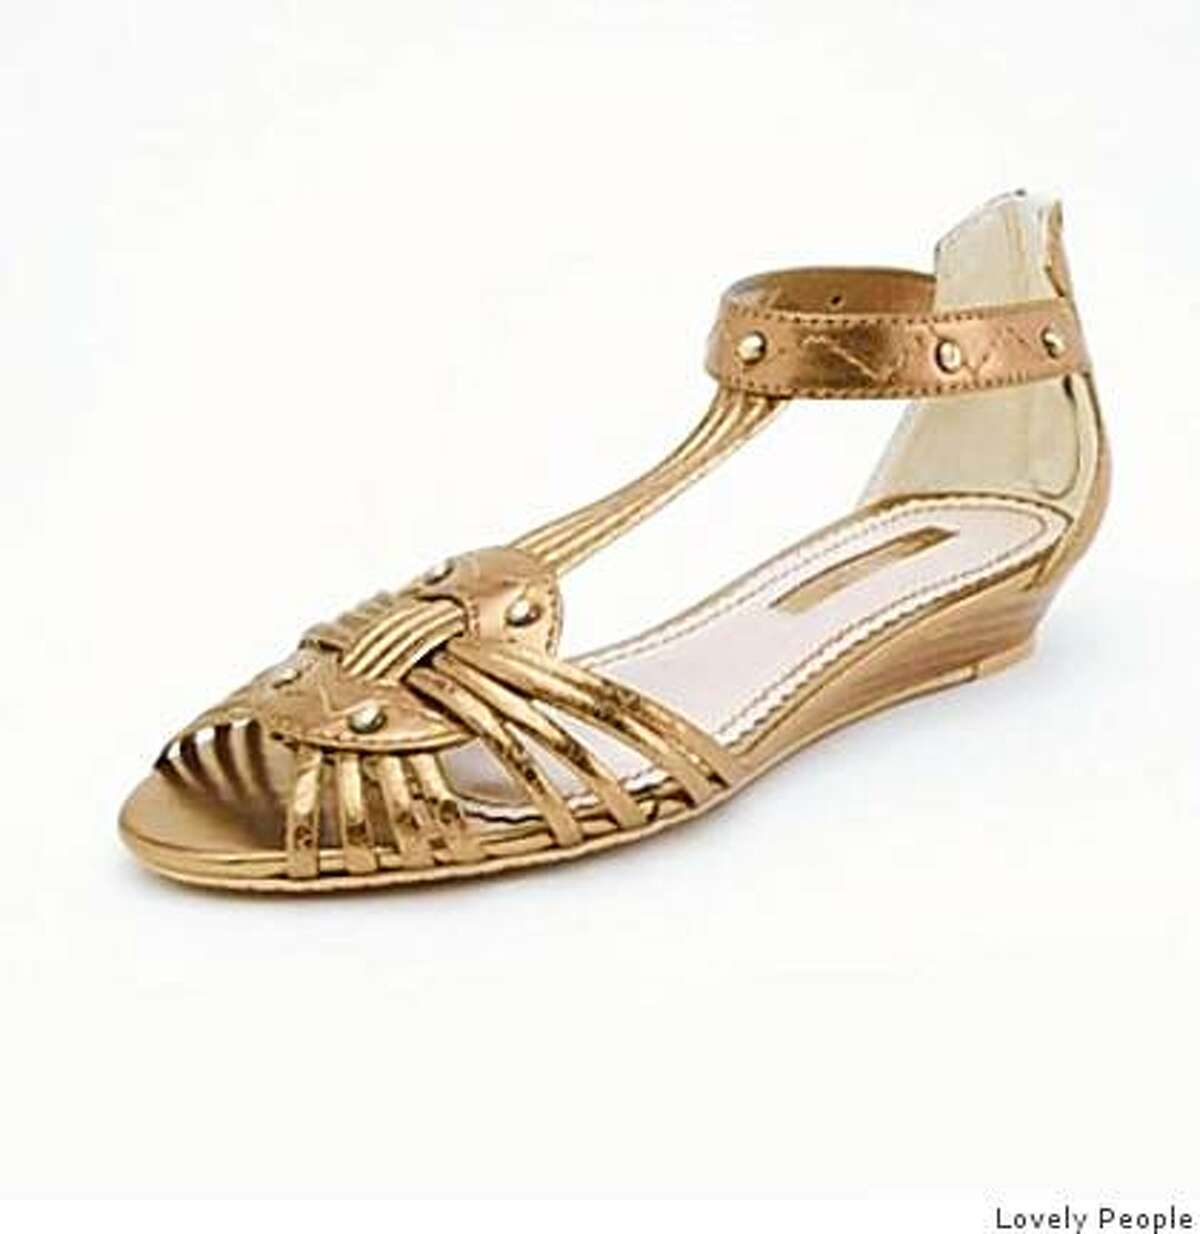 The Paula sandal by Lovely People is $85.